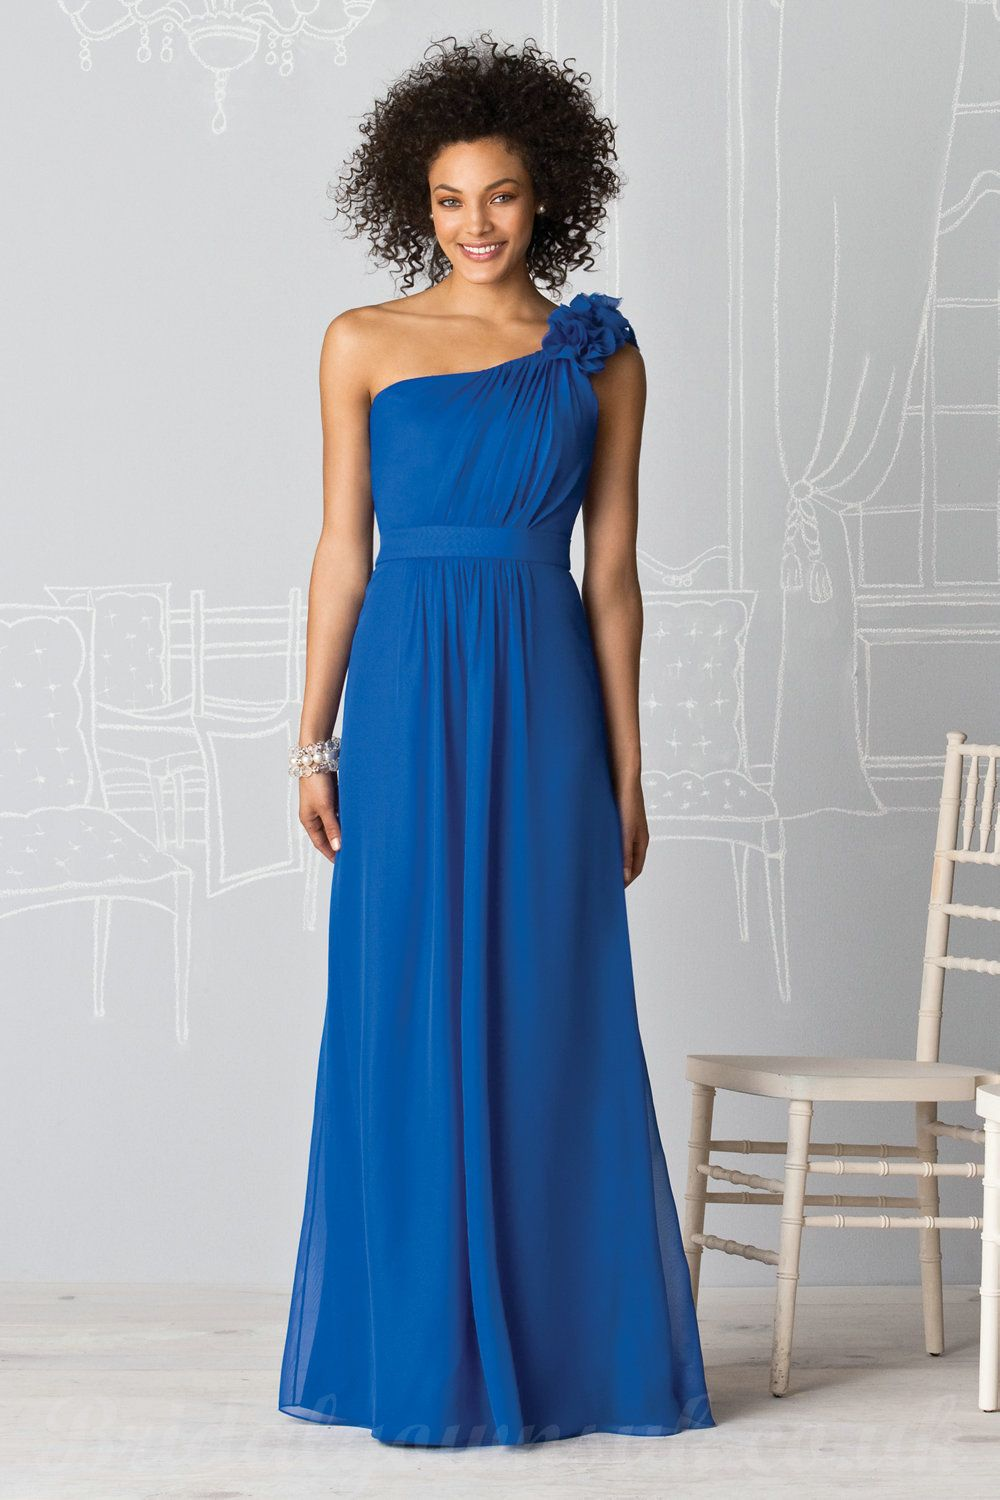 blue bridesmaid dress | Braidsmaid's Dresses | Pinterest | Royal ...